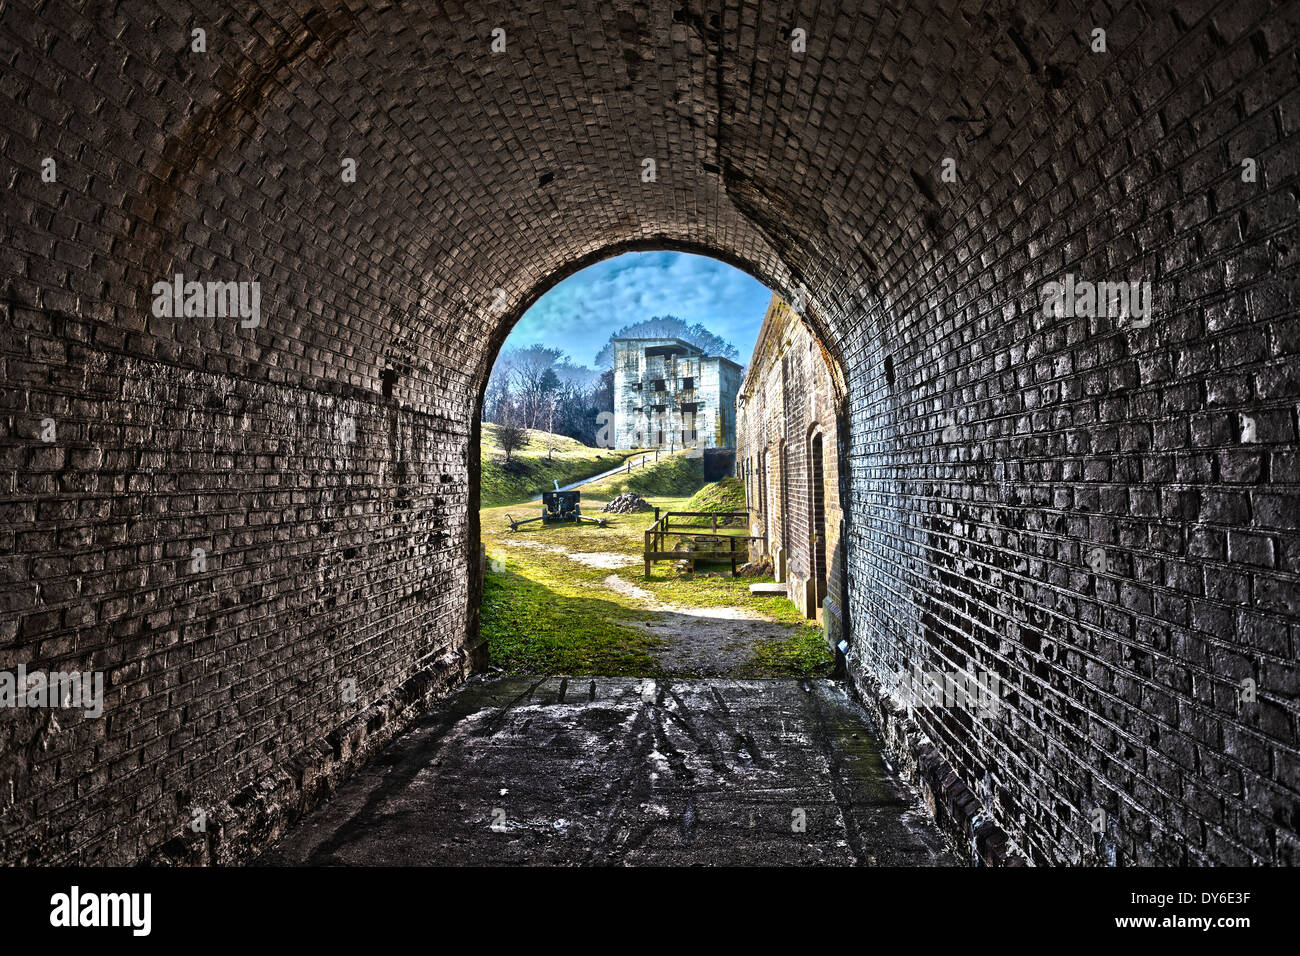 Western Fort in Swinoujscie, Poland, HDR processing. - Stock Image